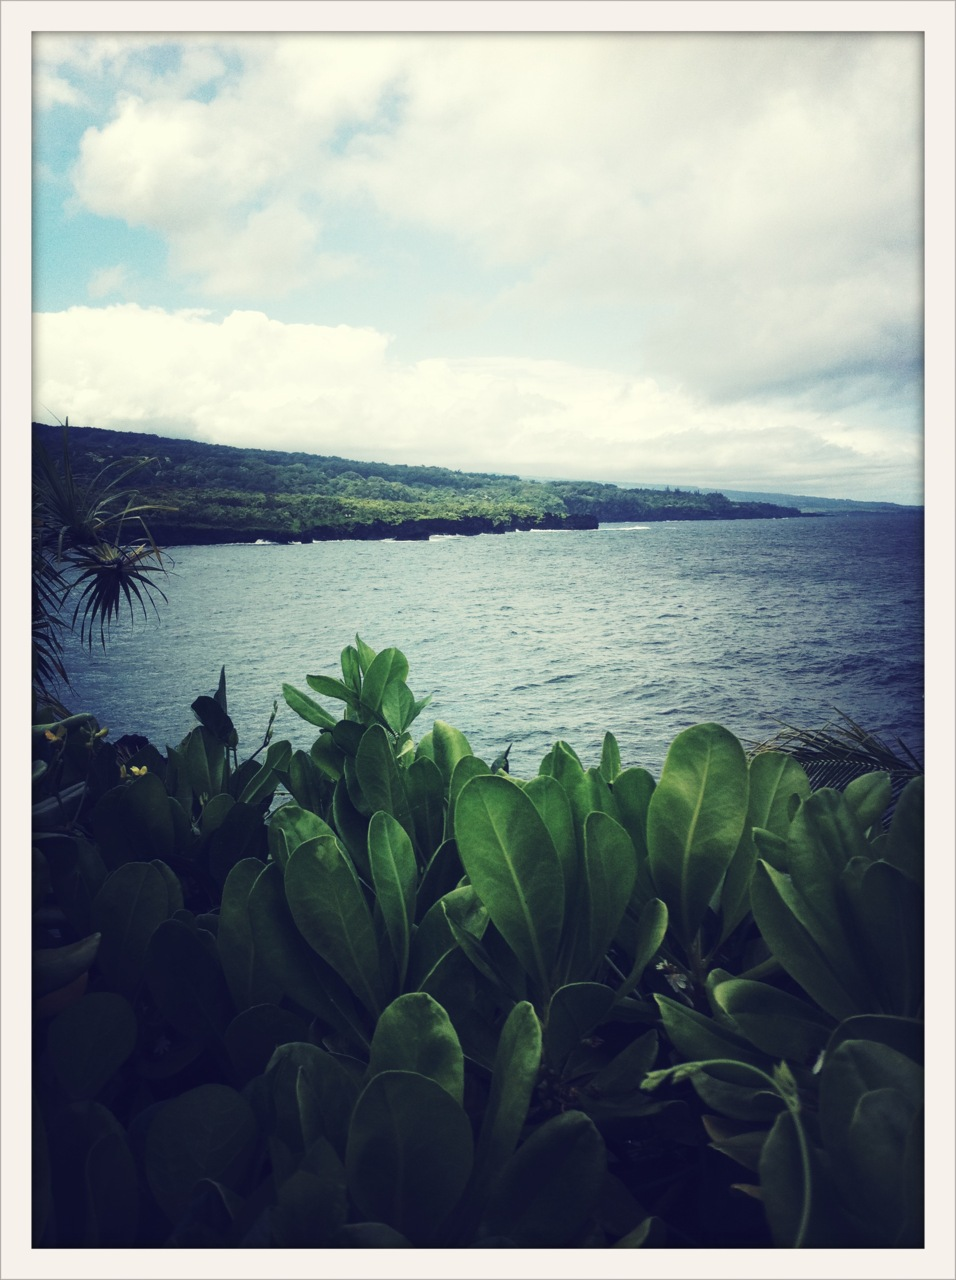 Where is this view on Maui? If you don't know, you should find out. One of Maui's hidden gems.